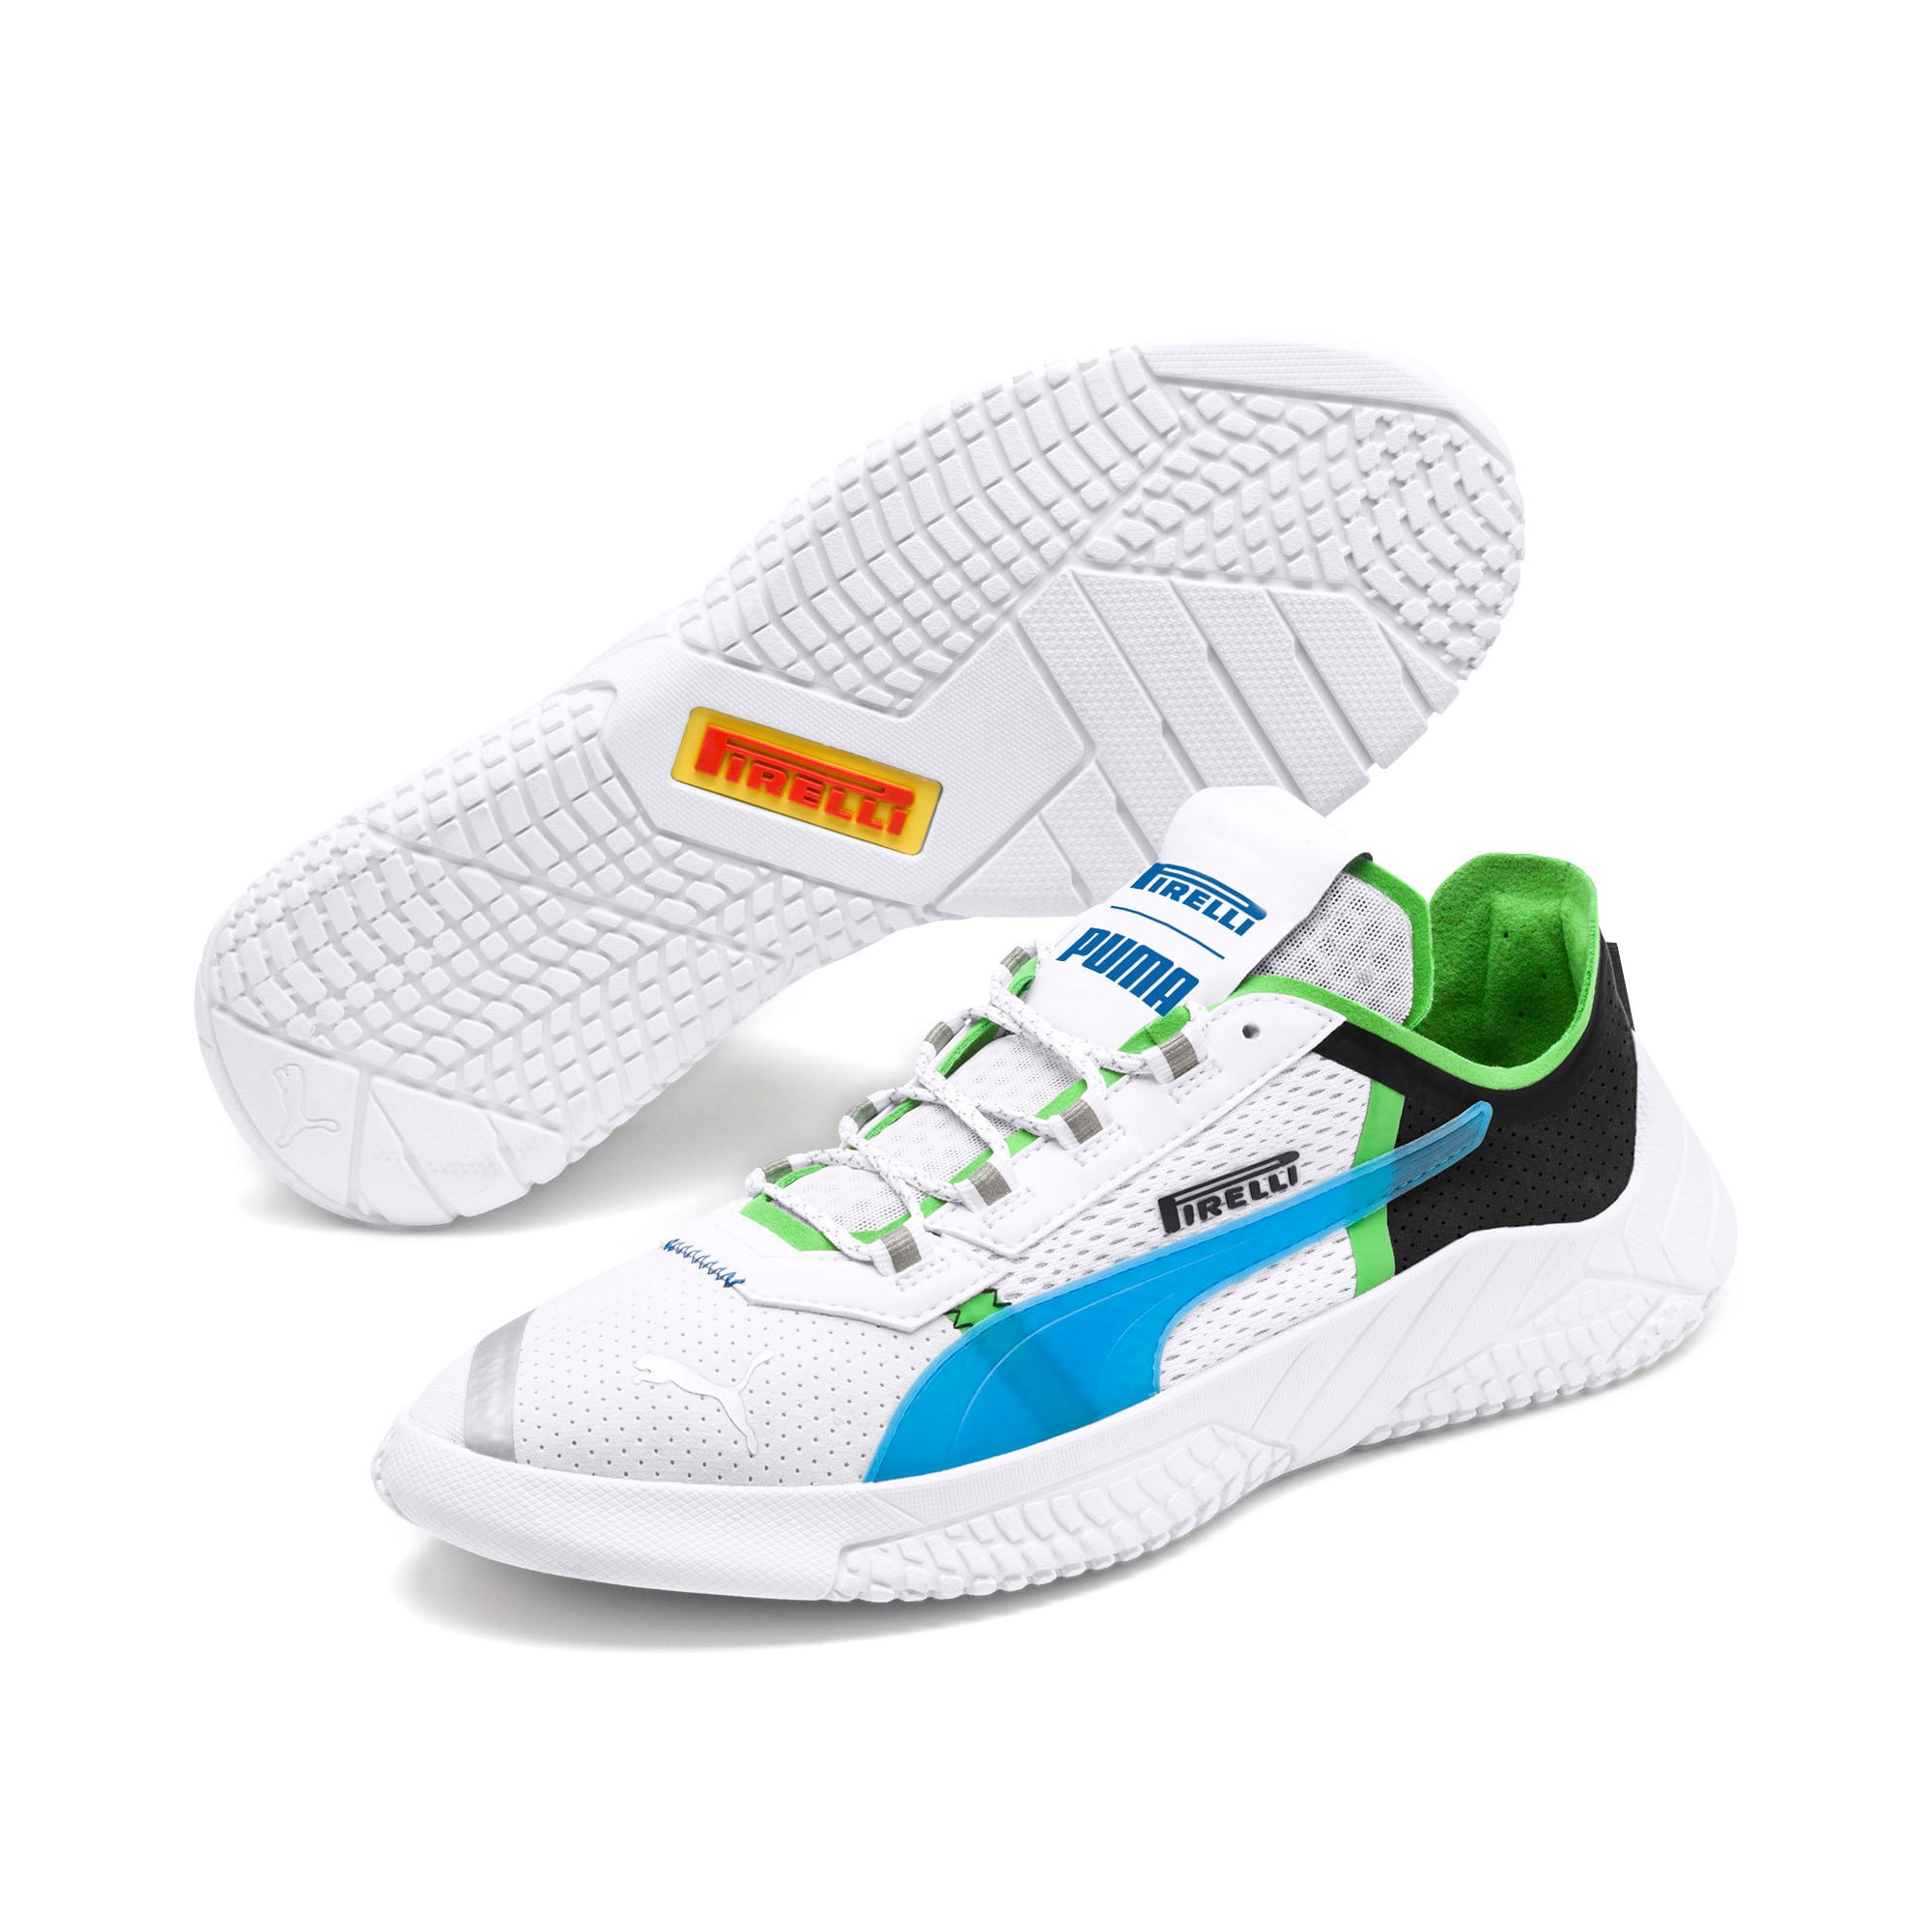 Thumbnail 3 of Replicat-X Pirelli Motorsport Shoes, White-Black-Classic Green, medium